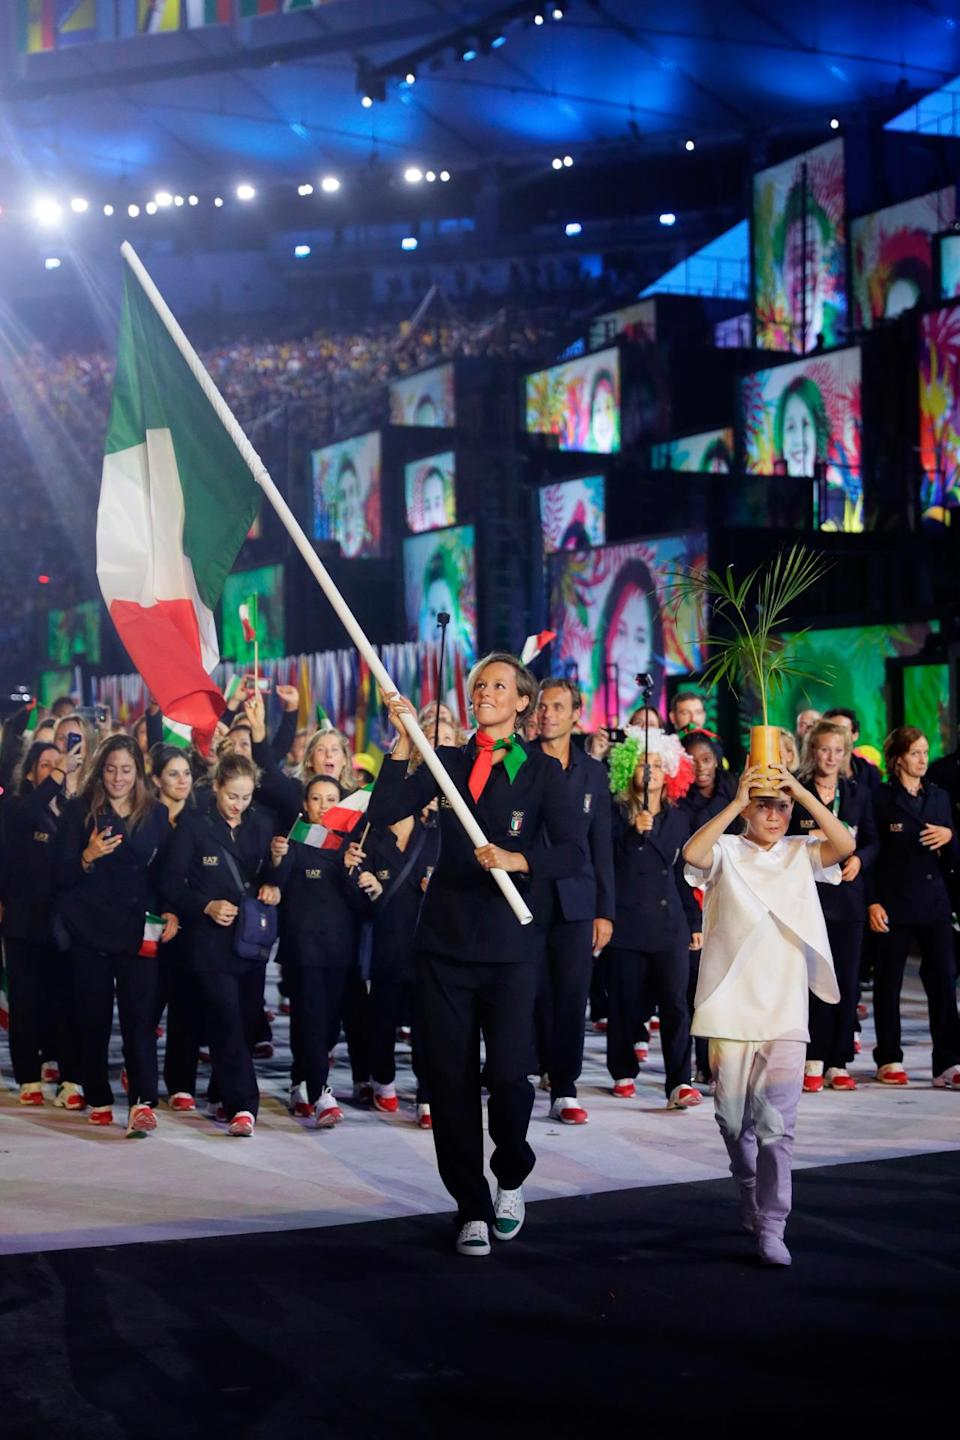 <p>In all-black outfits designed by Armani, the Italians looked like chic fashion ninjas, rather than athletes.</p><p><i>(Photo: Getty Images)</i><br></p>